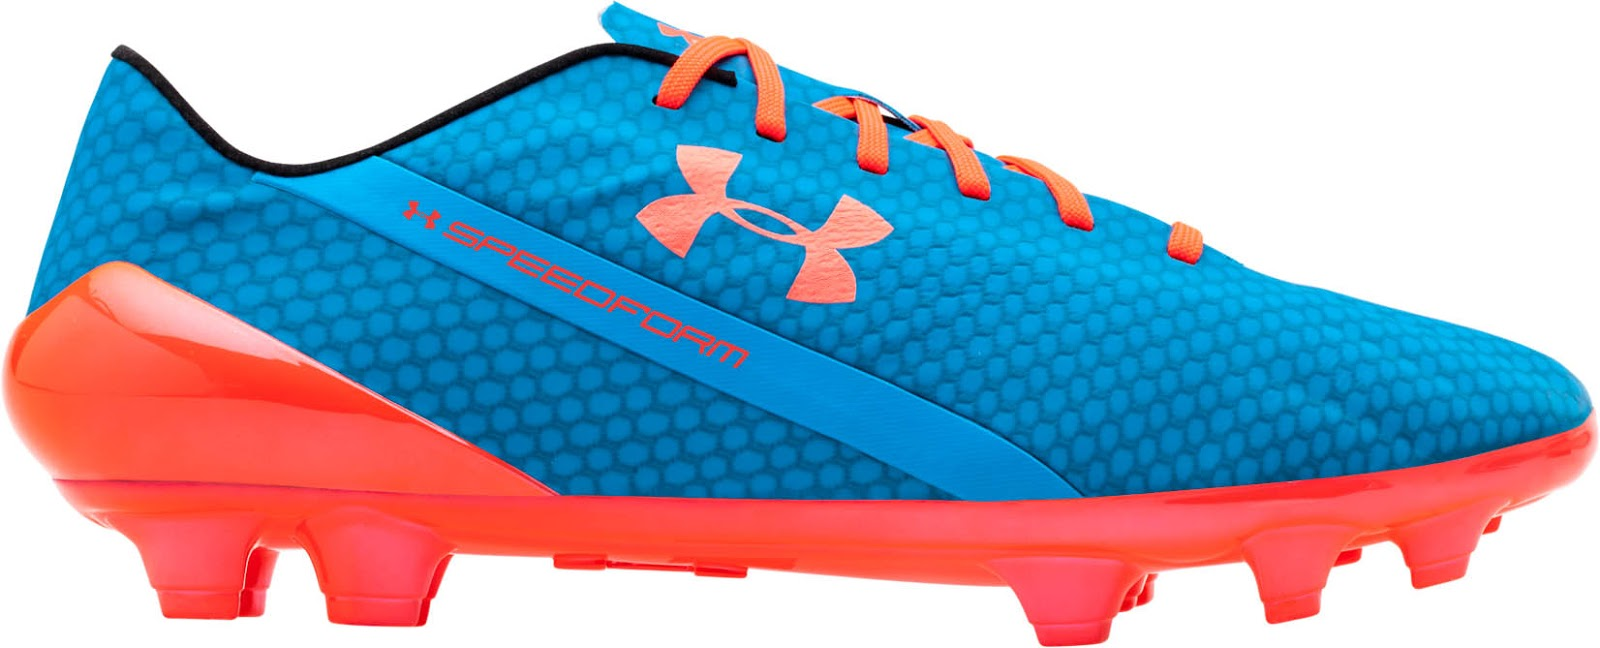 under armour speedform football cleats